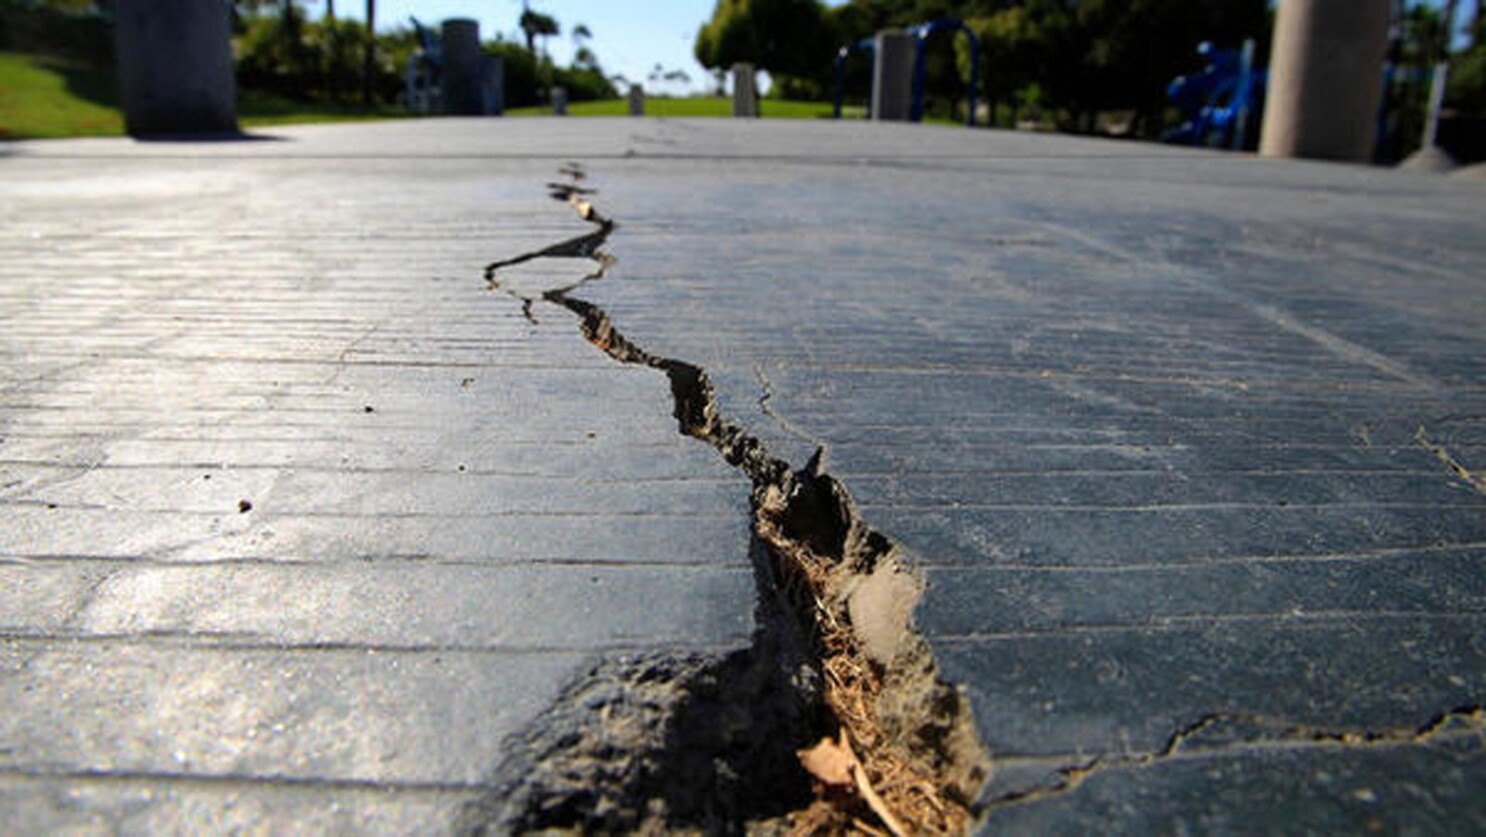 Earthquakes in California are discovered more than 15 miles deep